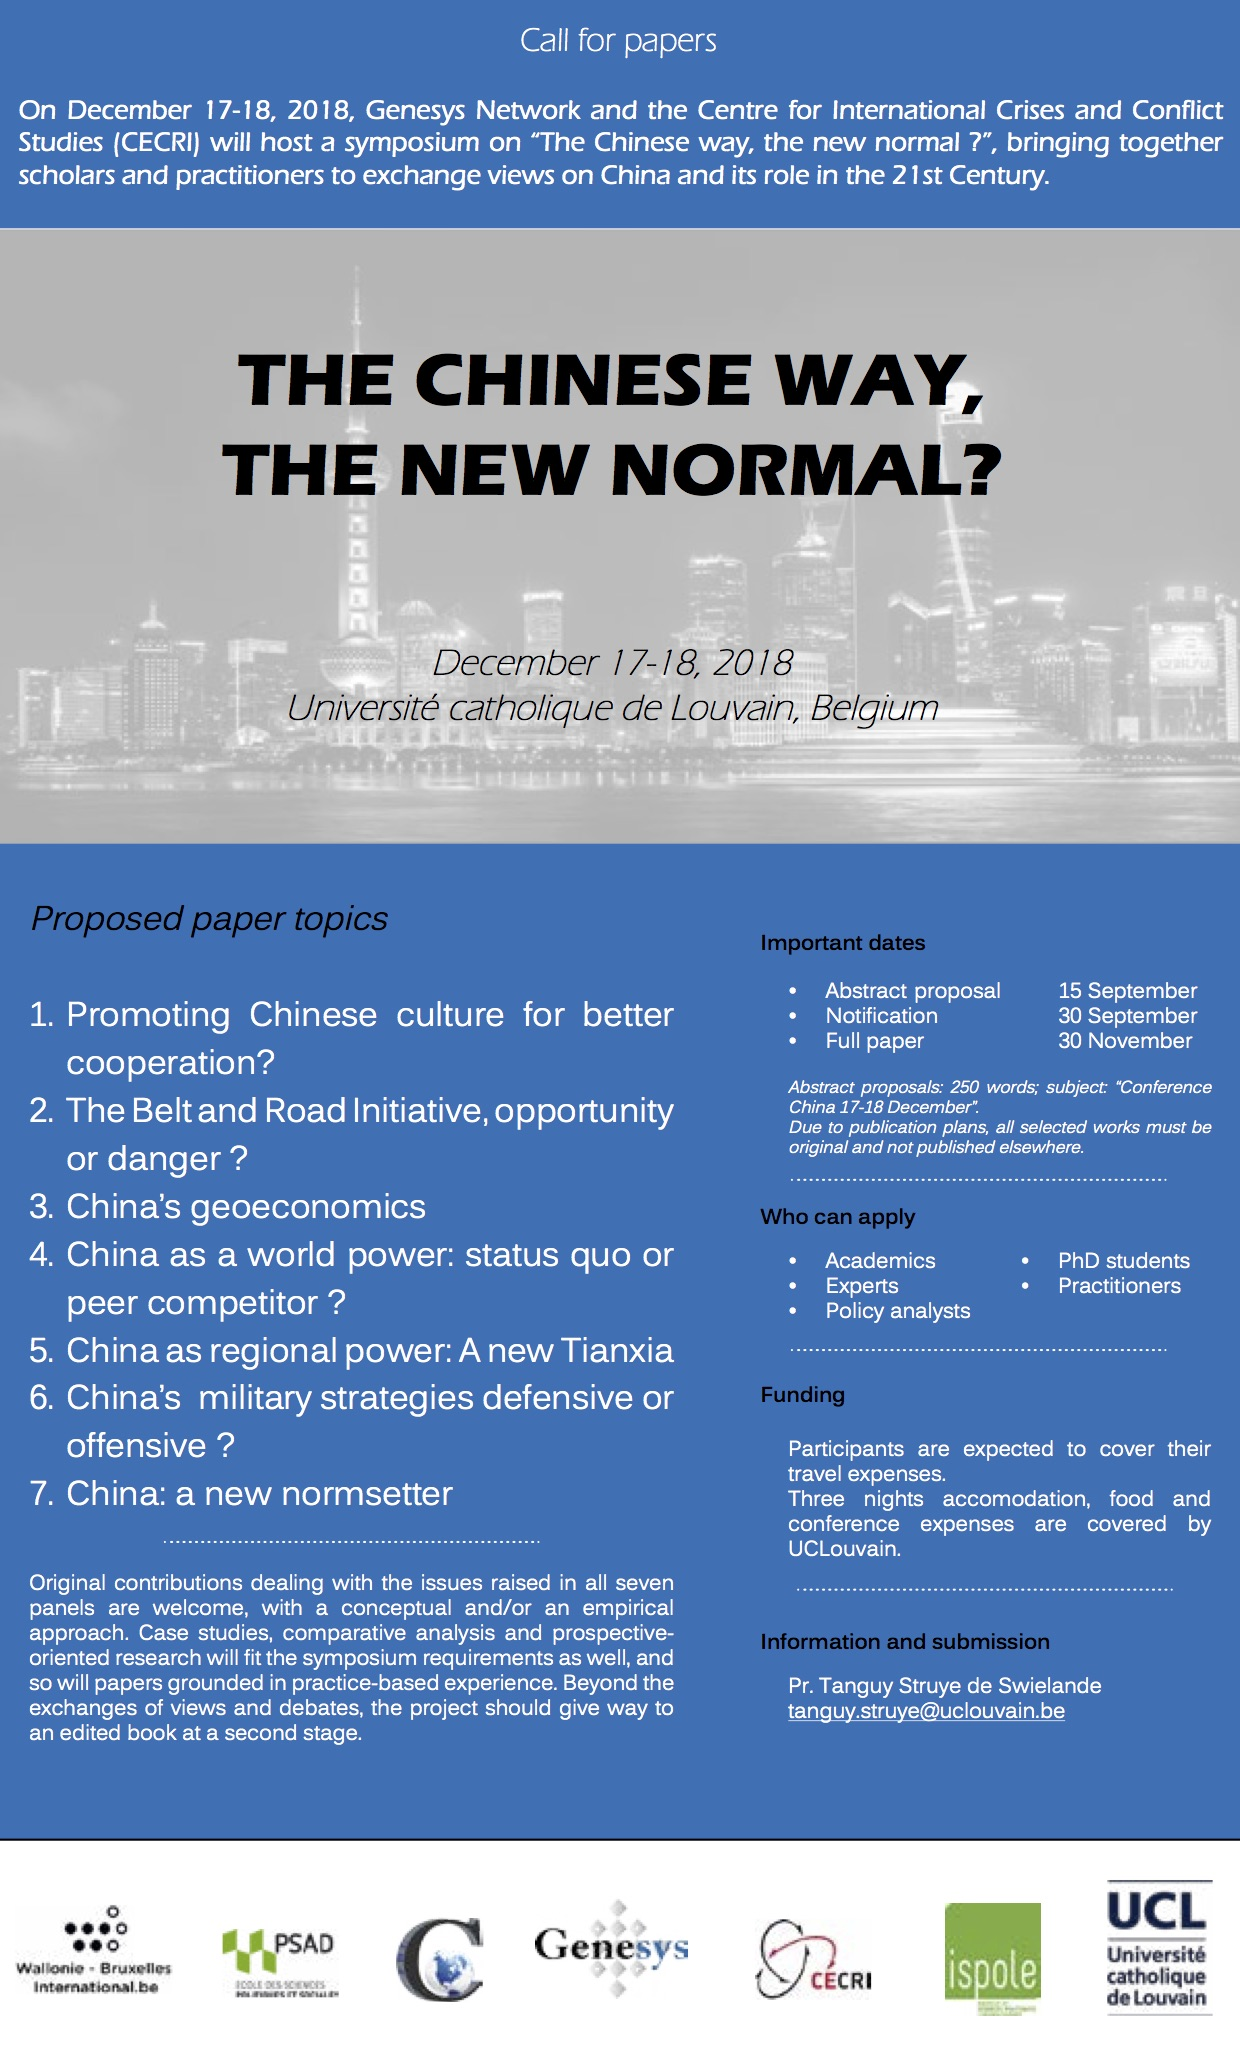 Call for papers China